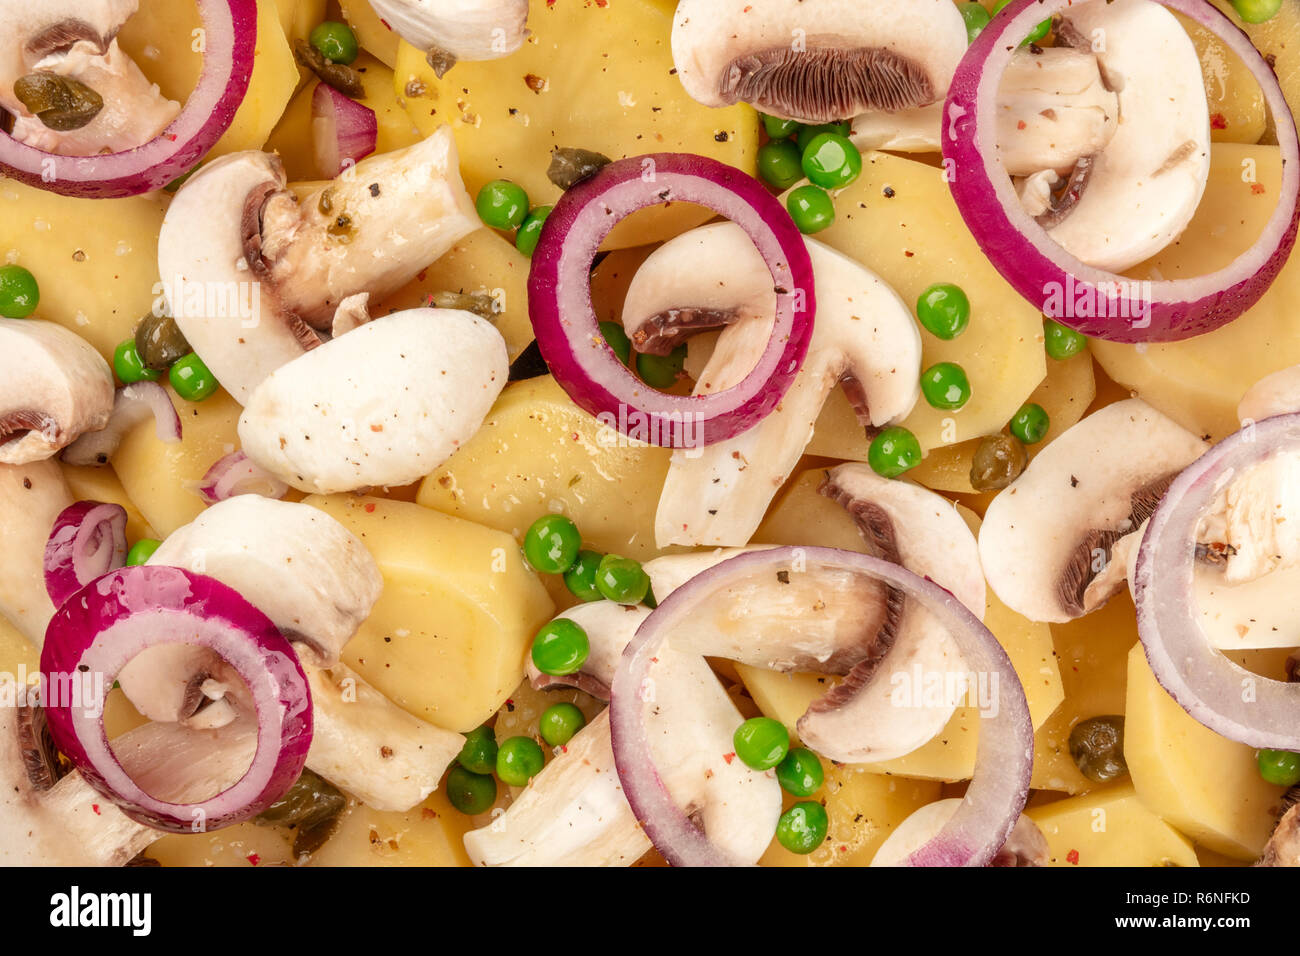 An overhead closeup photo of raw vegetables, potatoes, onions, green peas, and mushrooms, cooking a vegan dinner - Stock Image